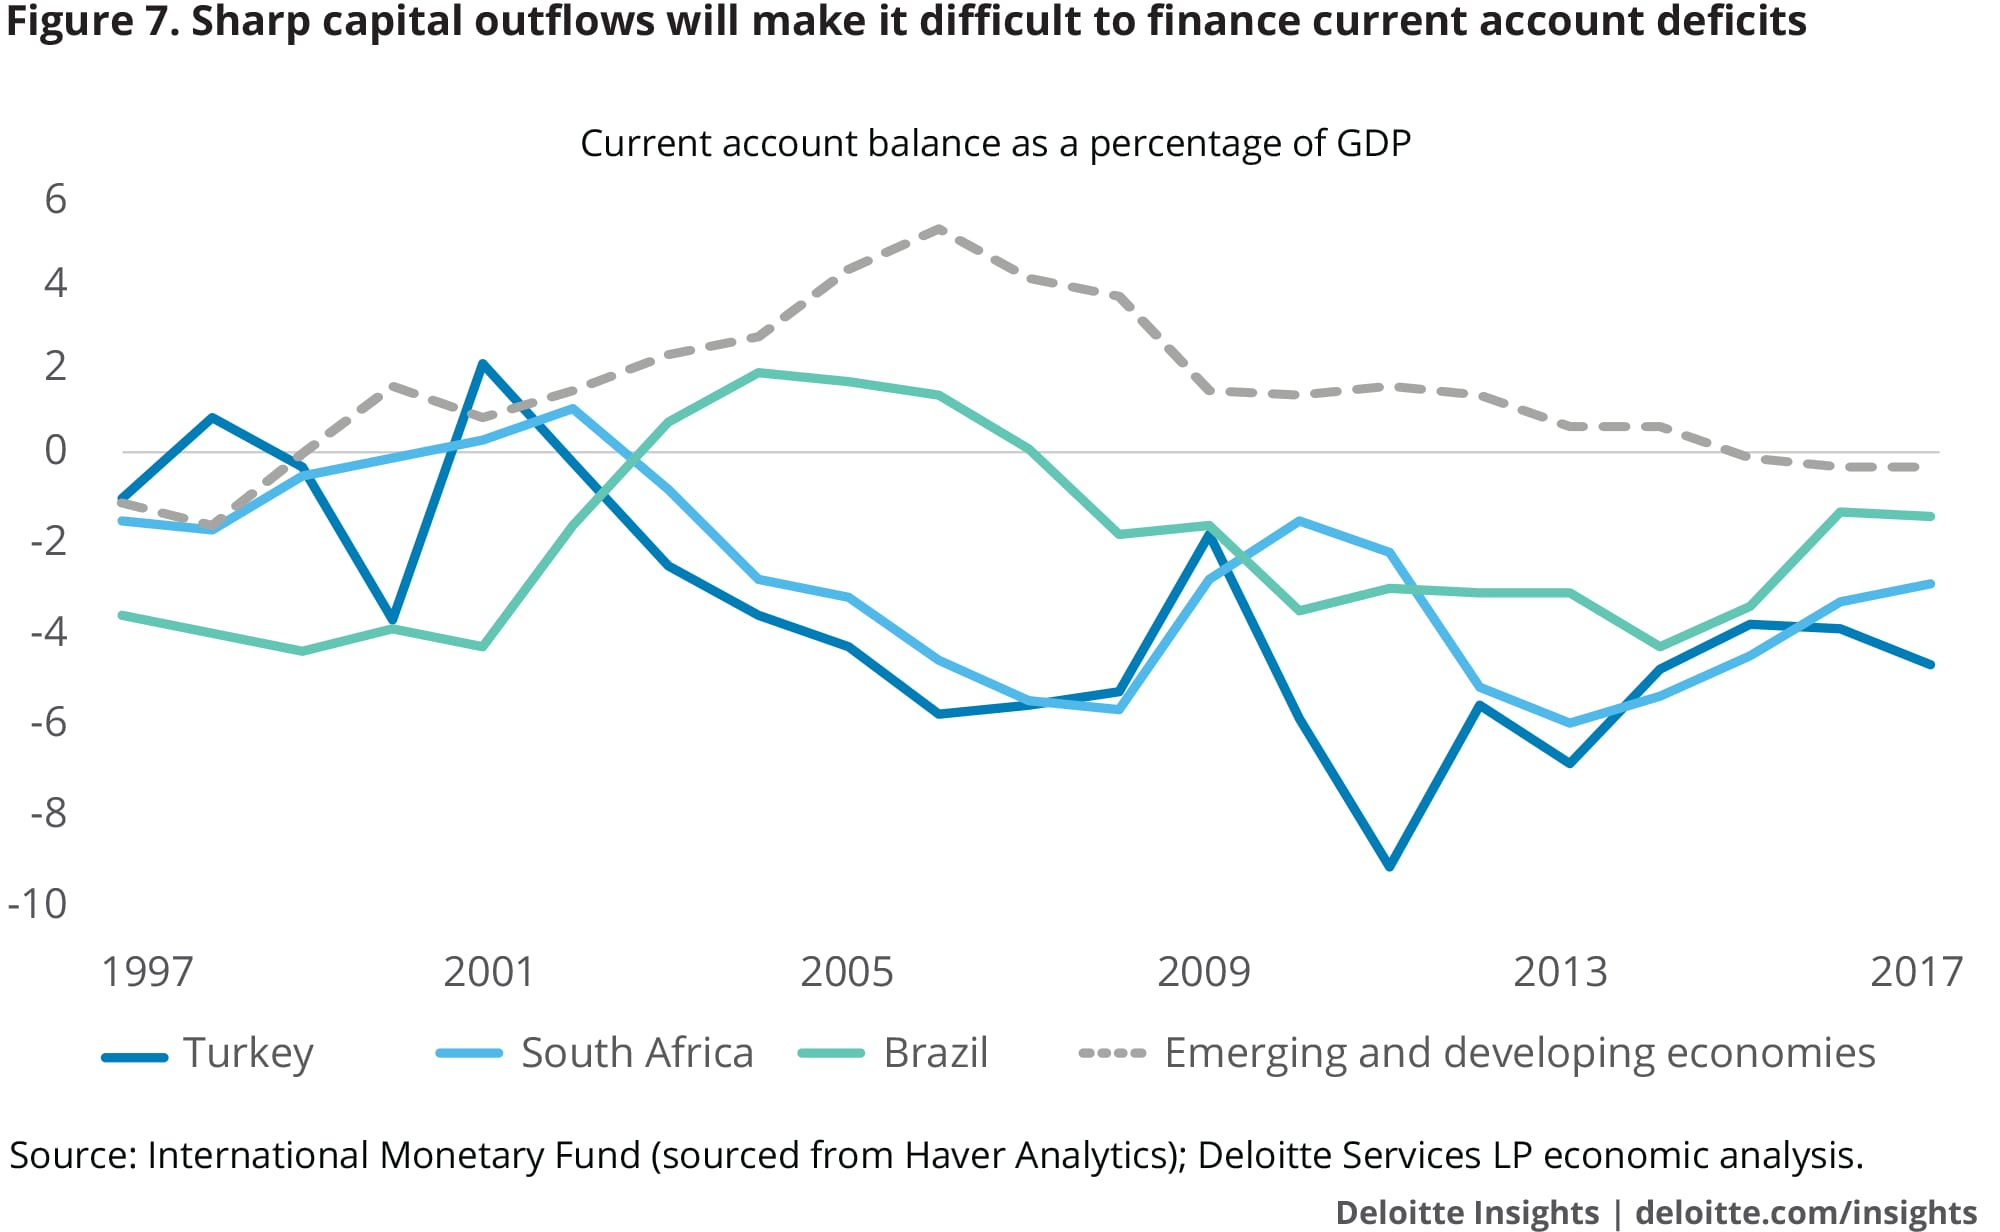 Sharp capital outflows will make it difficult to finance current account deficits